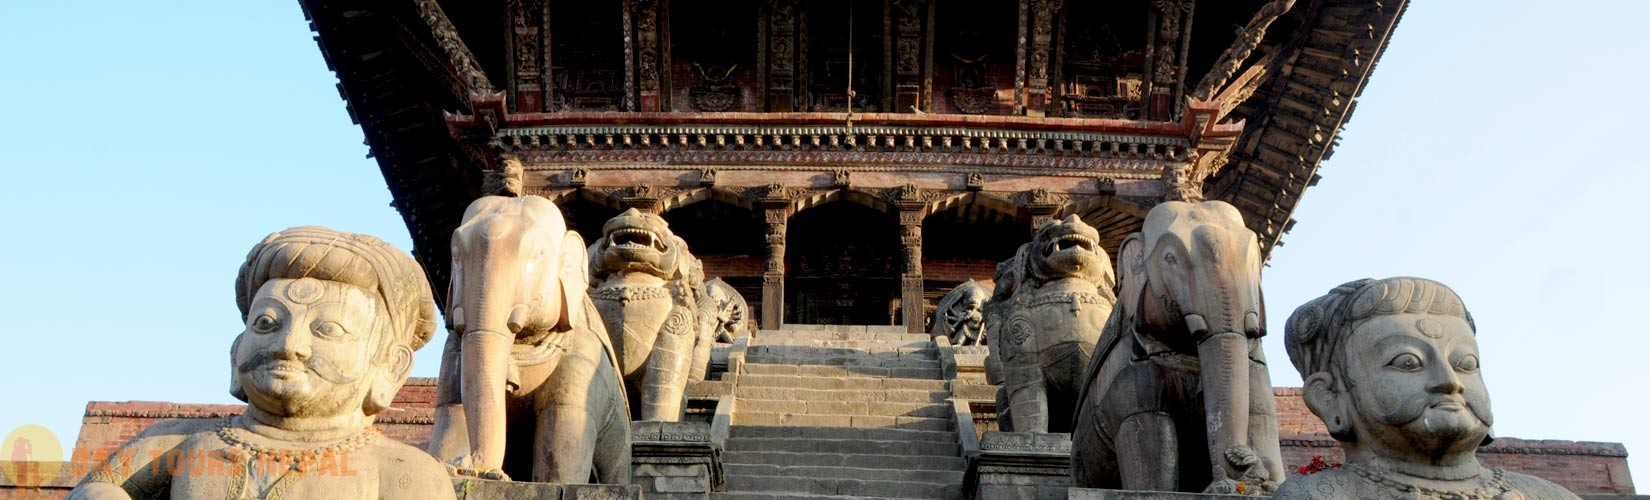 Tours In Nepal 2018